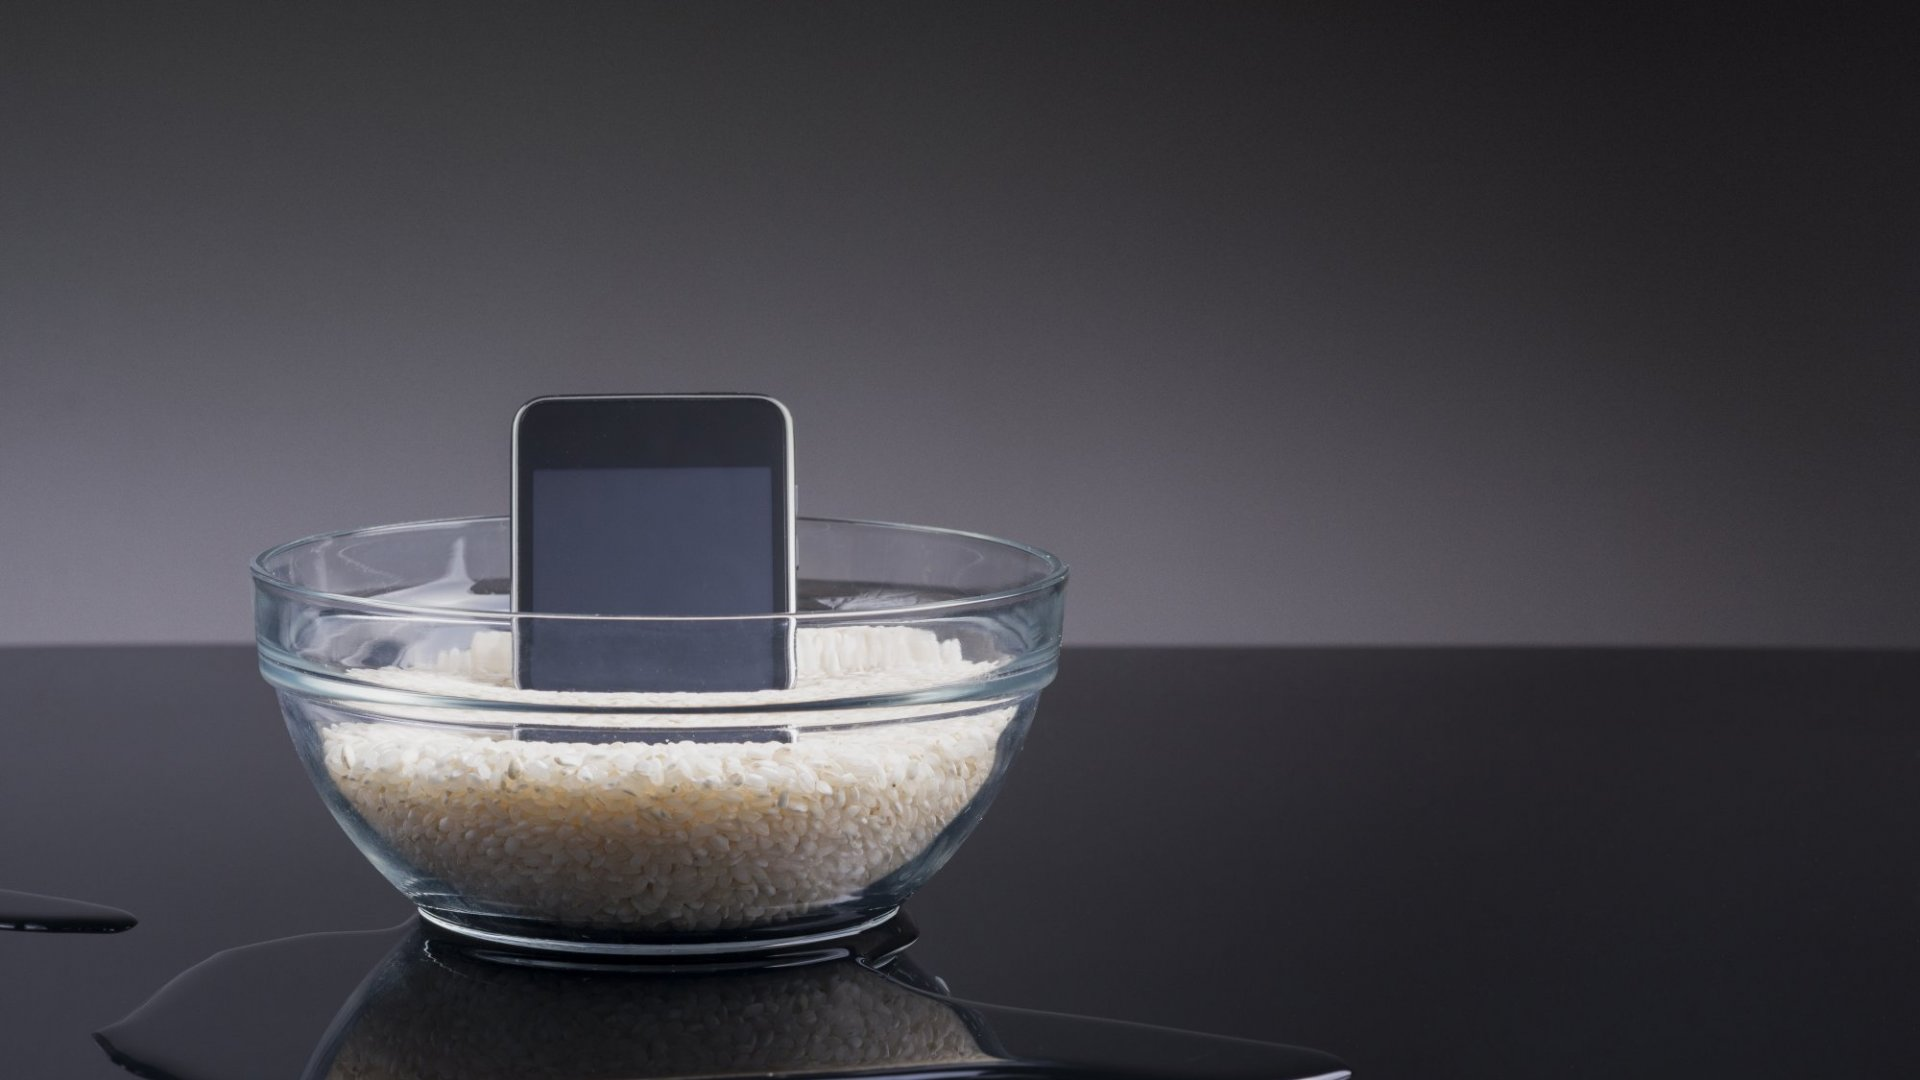 Forget Rice, This Phone-Dryer Has an 84% Success Rate